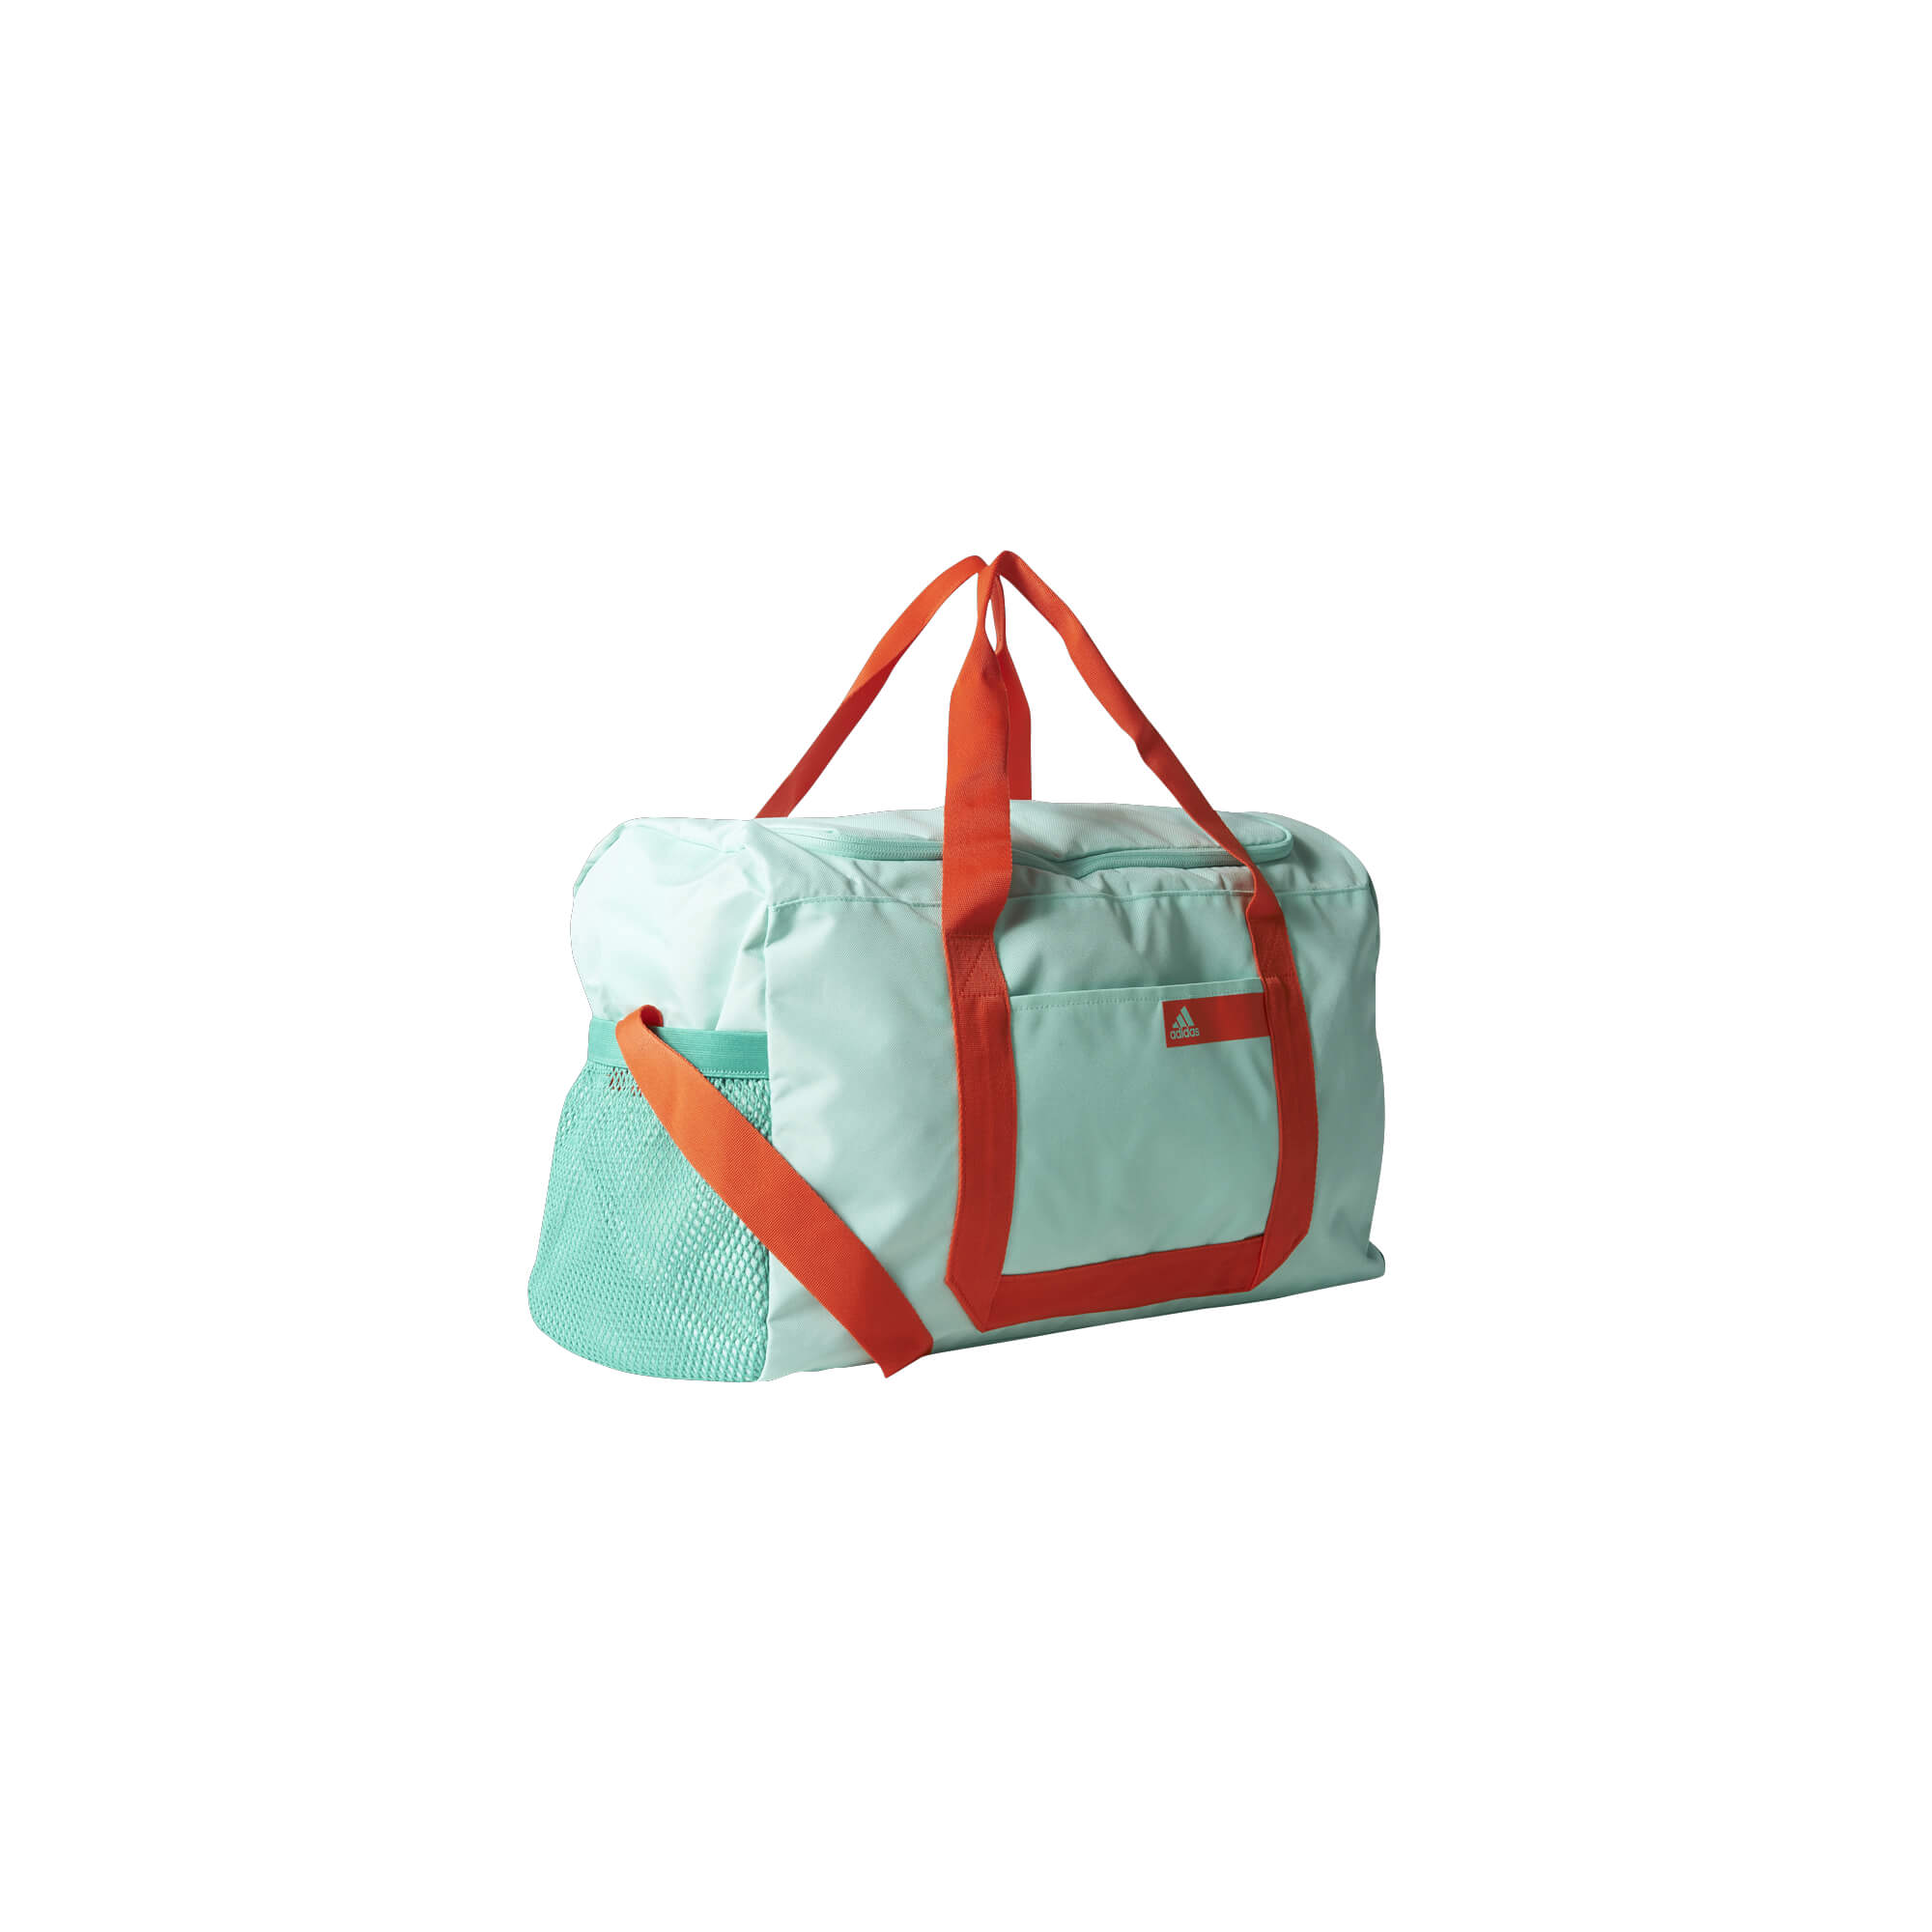 adidas Good Teambag M Solid, vel. none